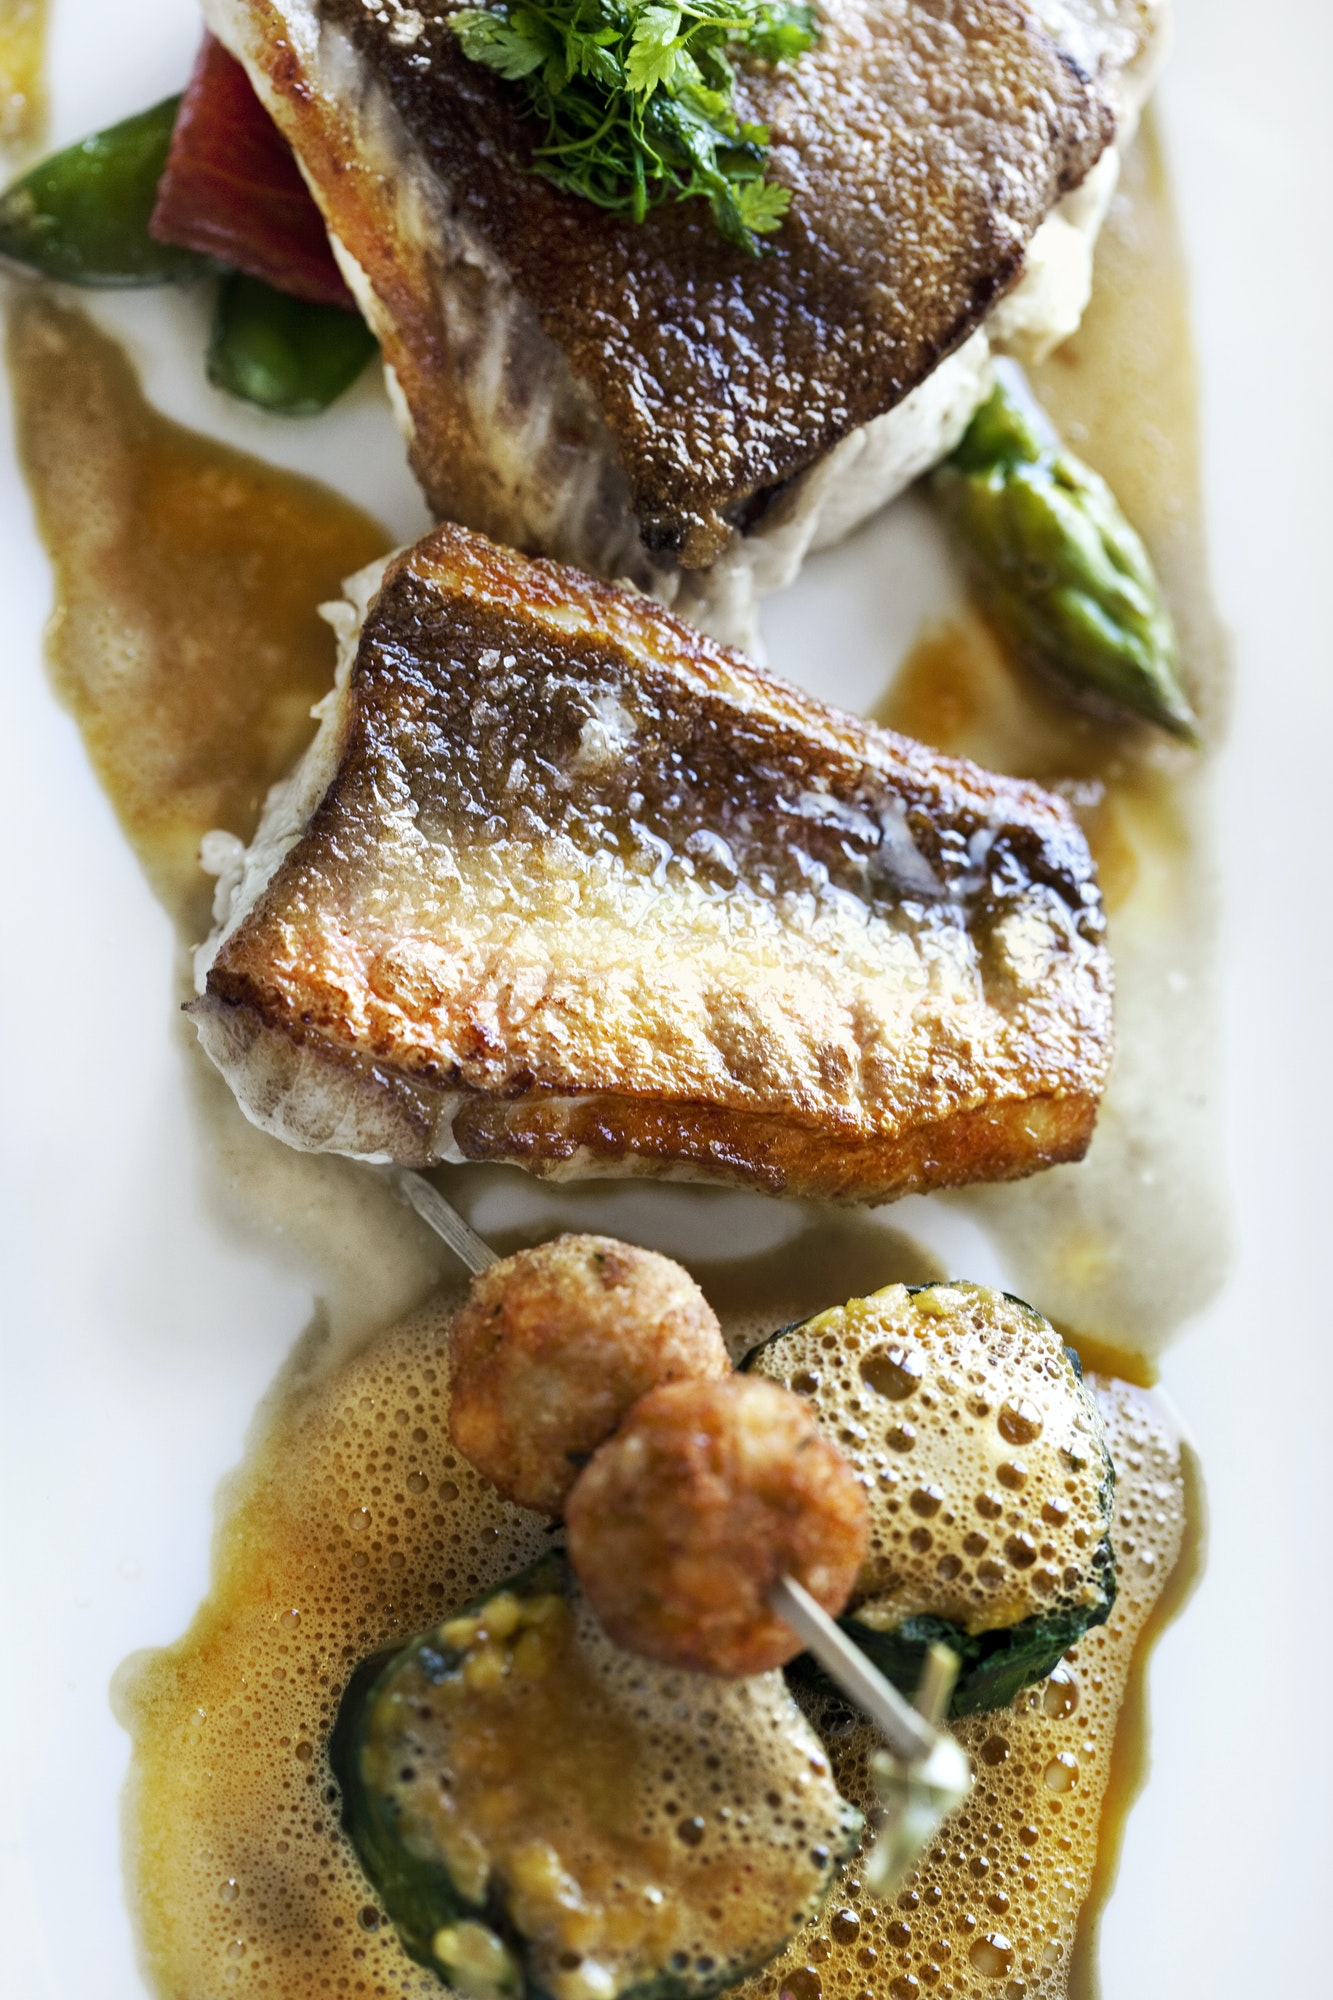 Cod and vegetable